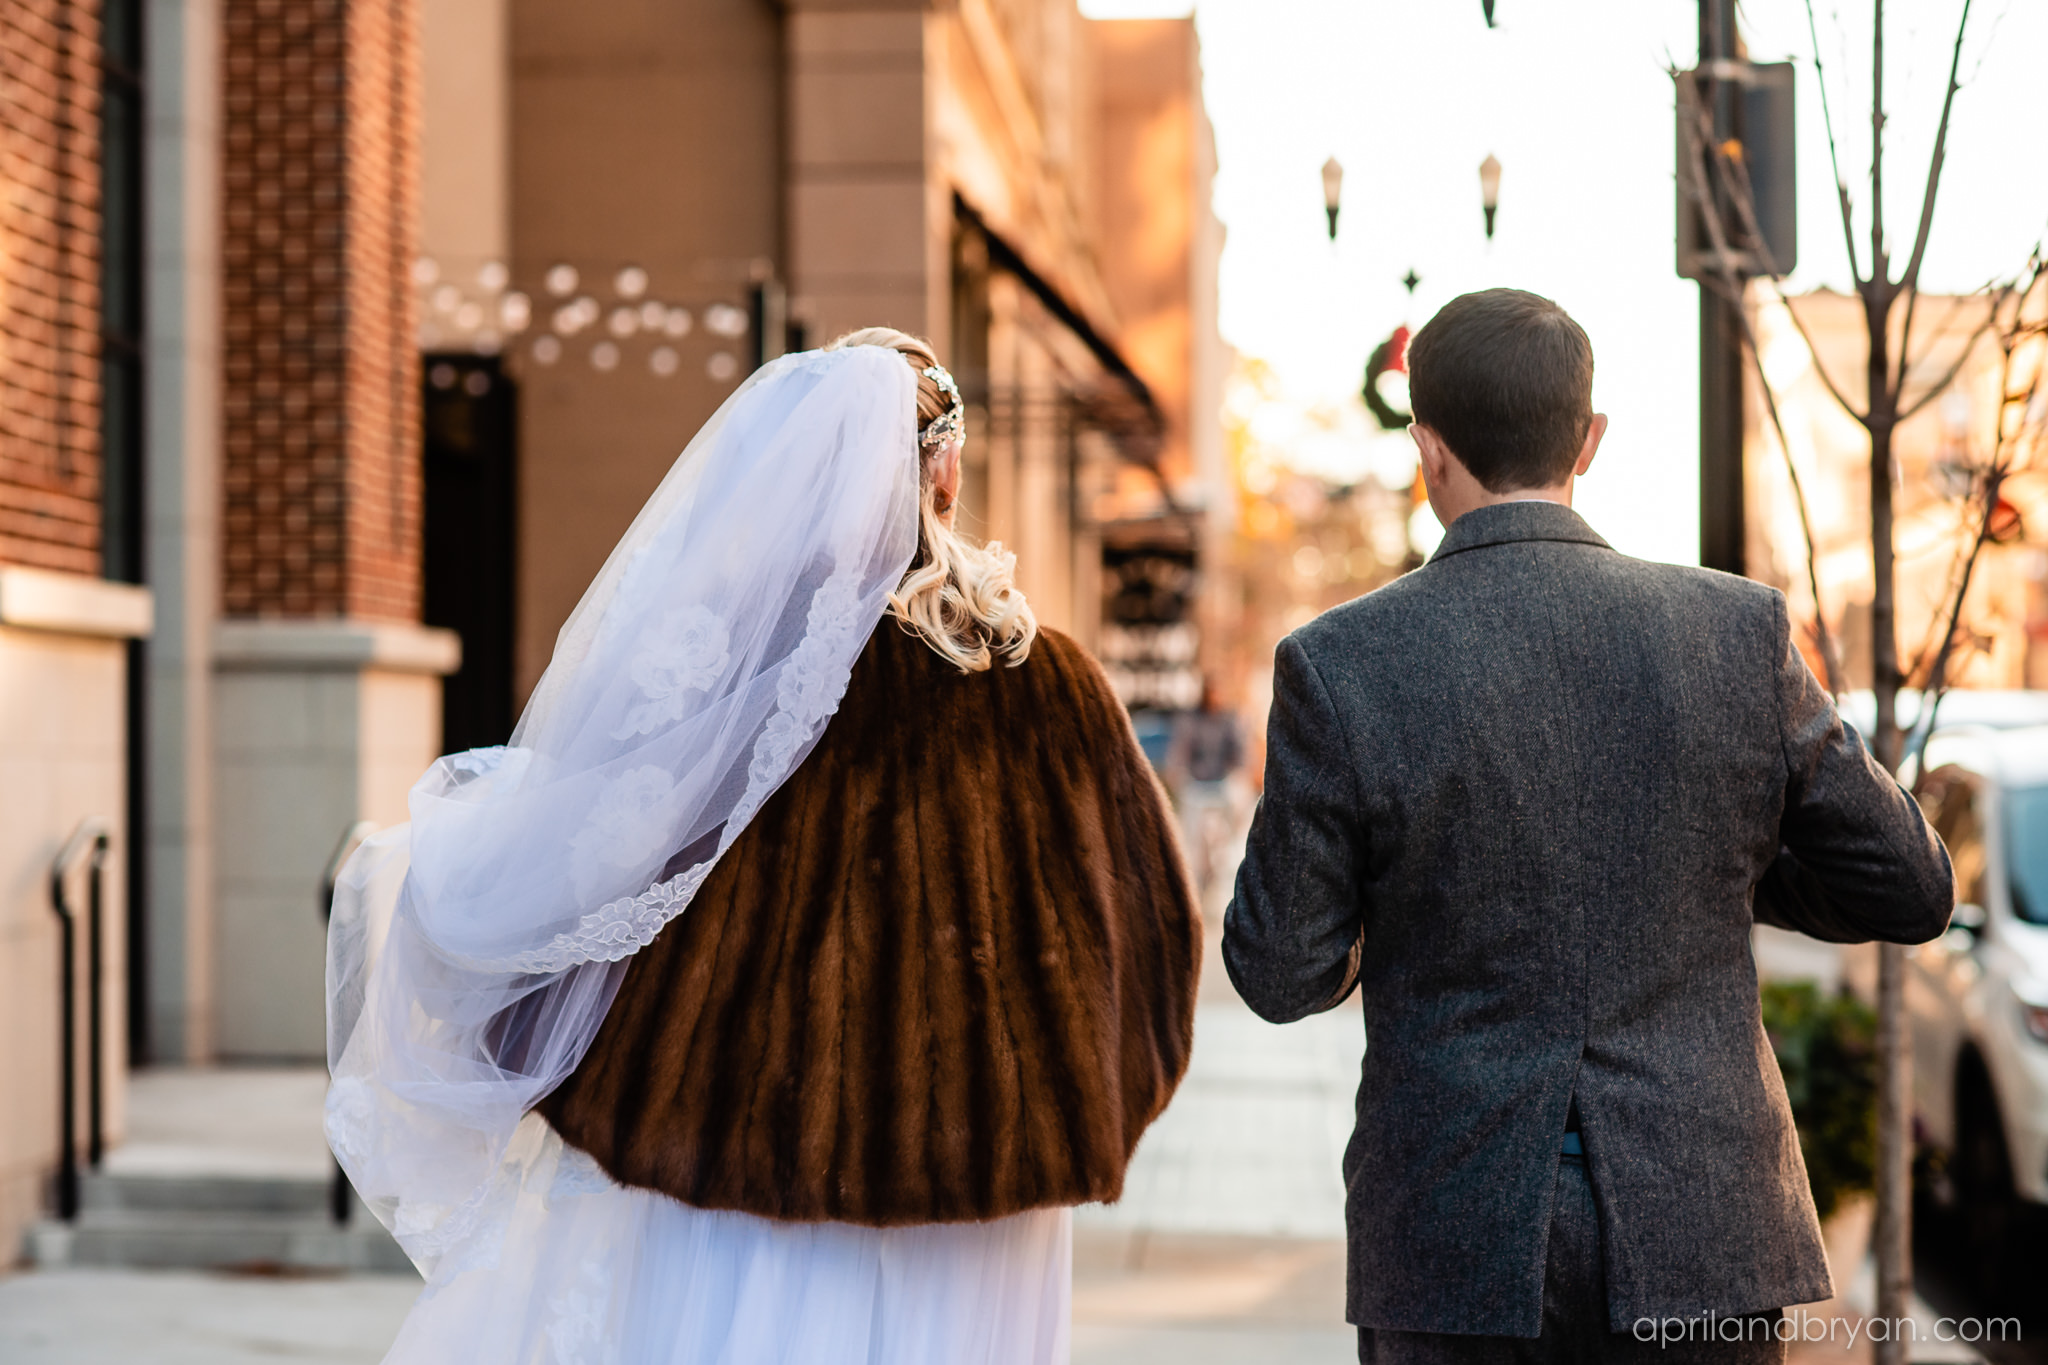 Their first walk together as husband and wife. Nicholas and Rebecca Fasnacht tie the not at Tellus360 on November 1, 2019. Captured by April & Bryan Photography and featured on Dream Weddings.